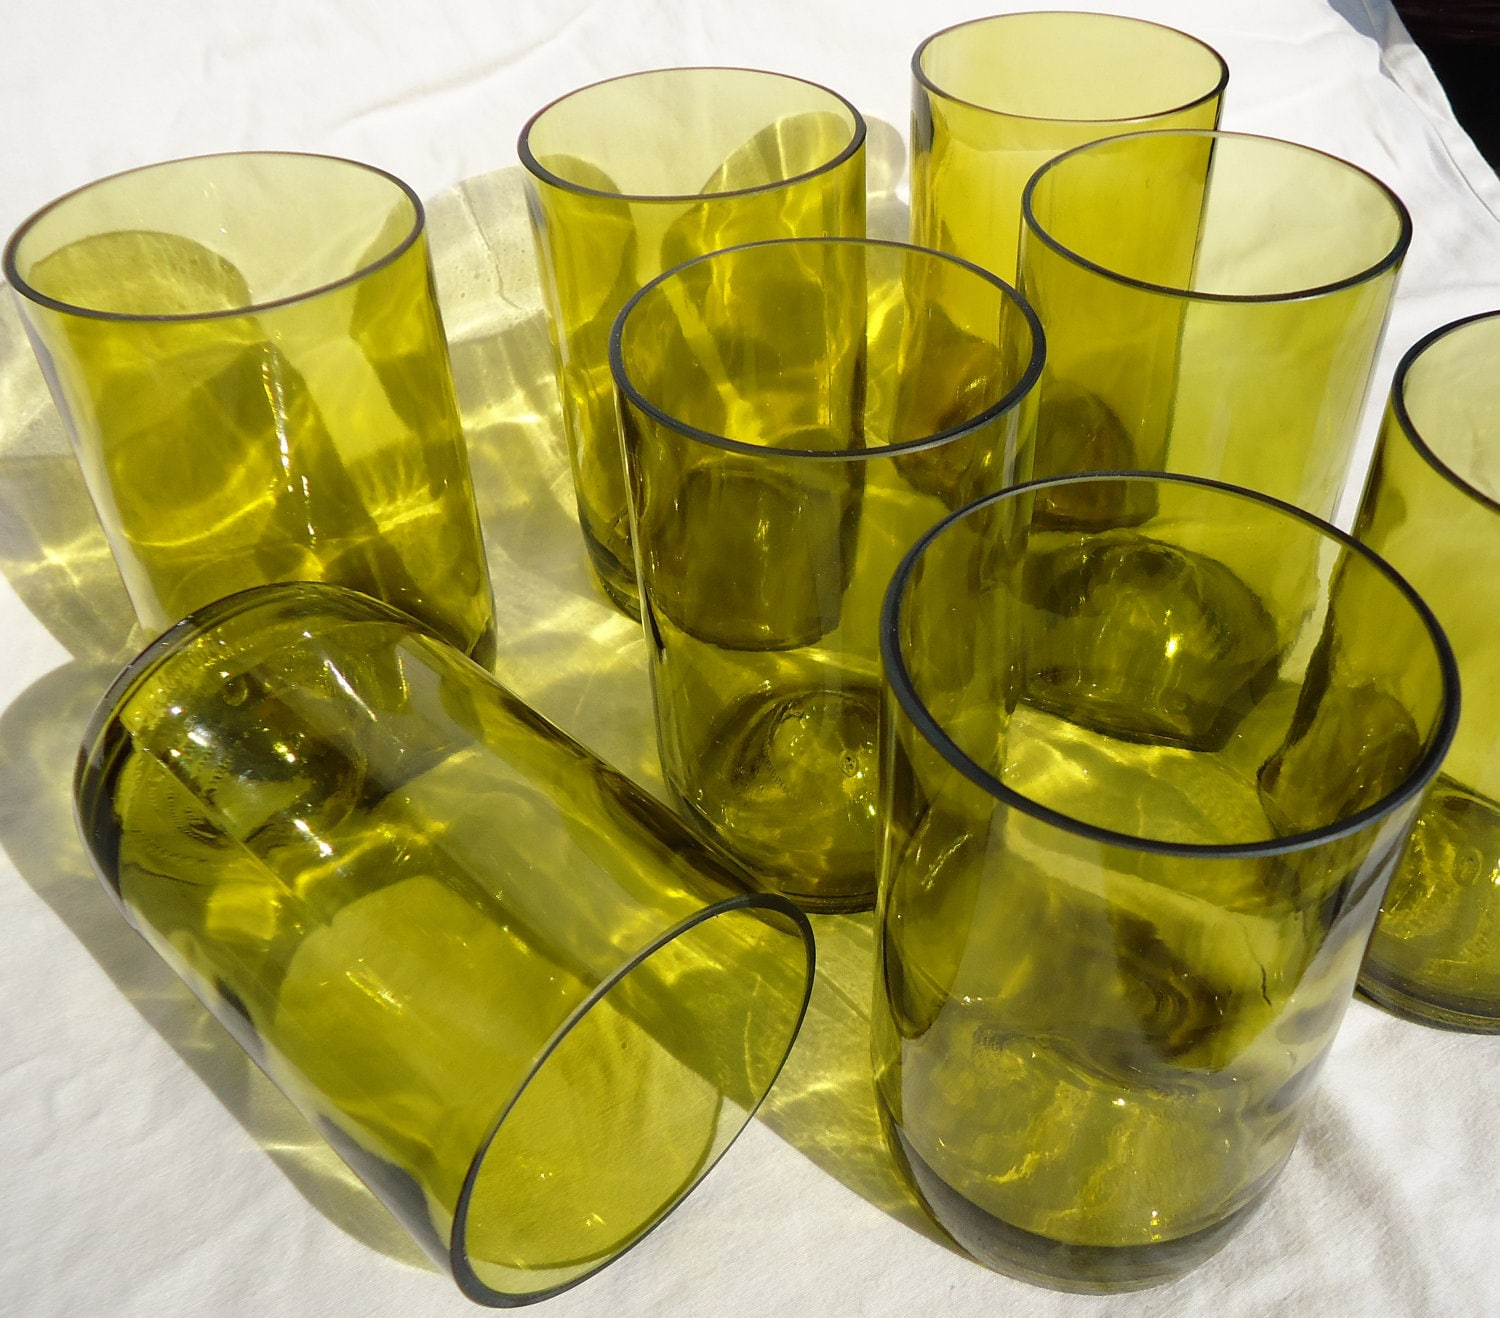 Upcycled Wine Bottle Glasses made from Recycled Yellow Wine Bottles 12oz  Set of 8